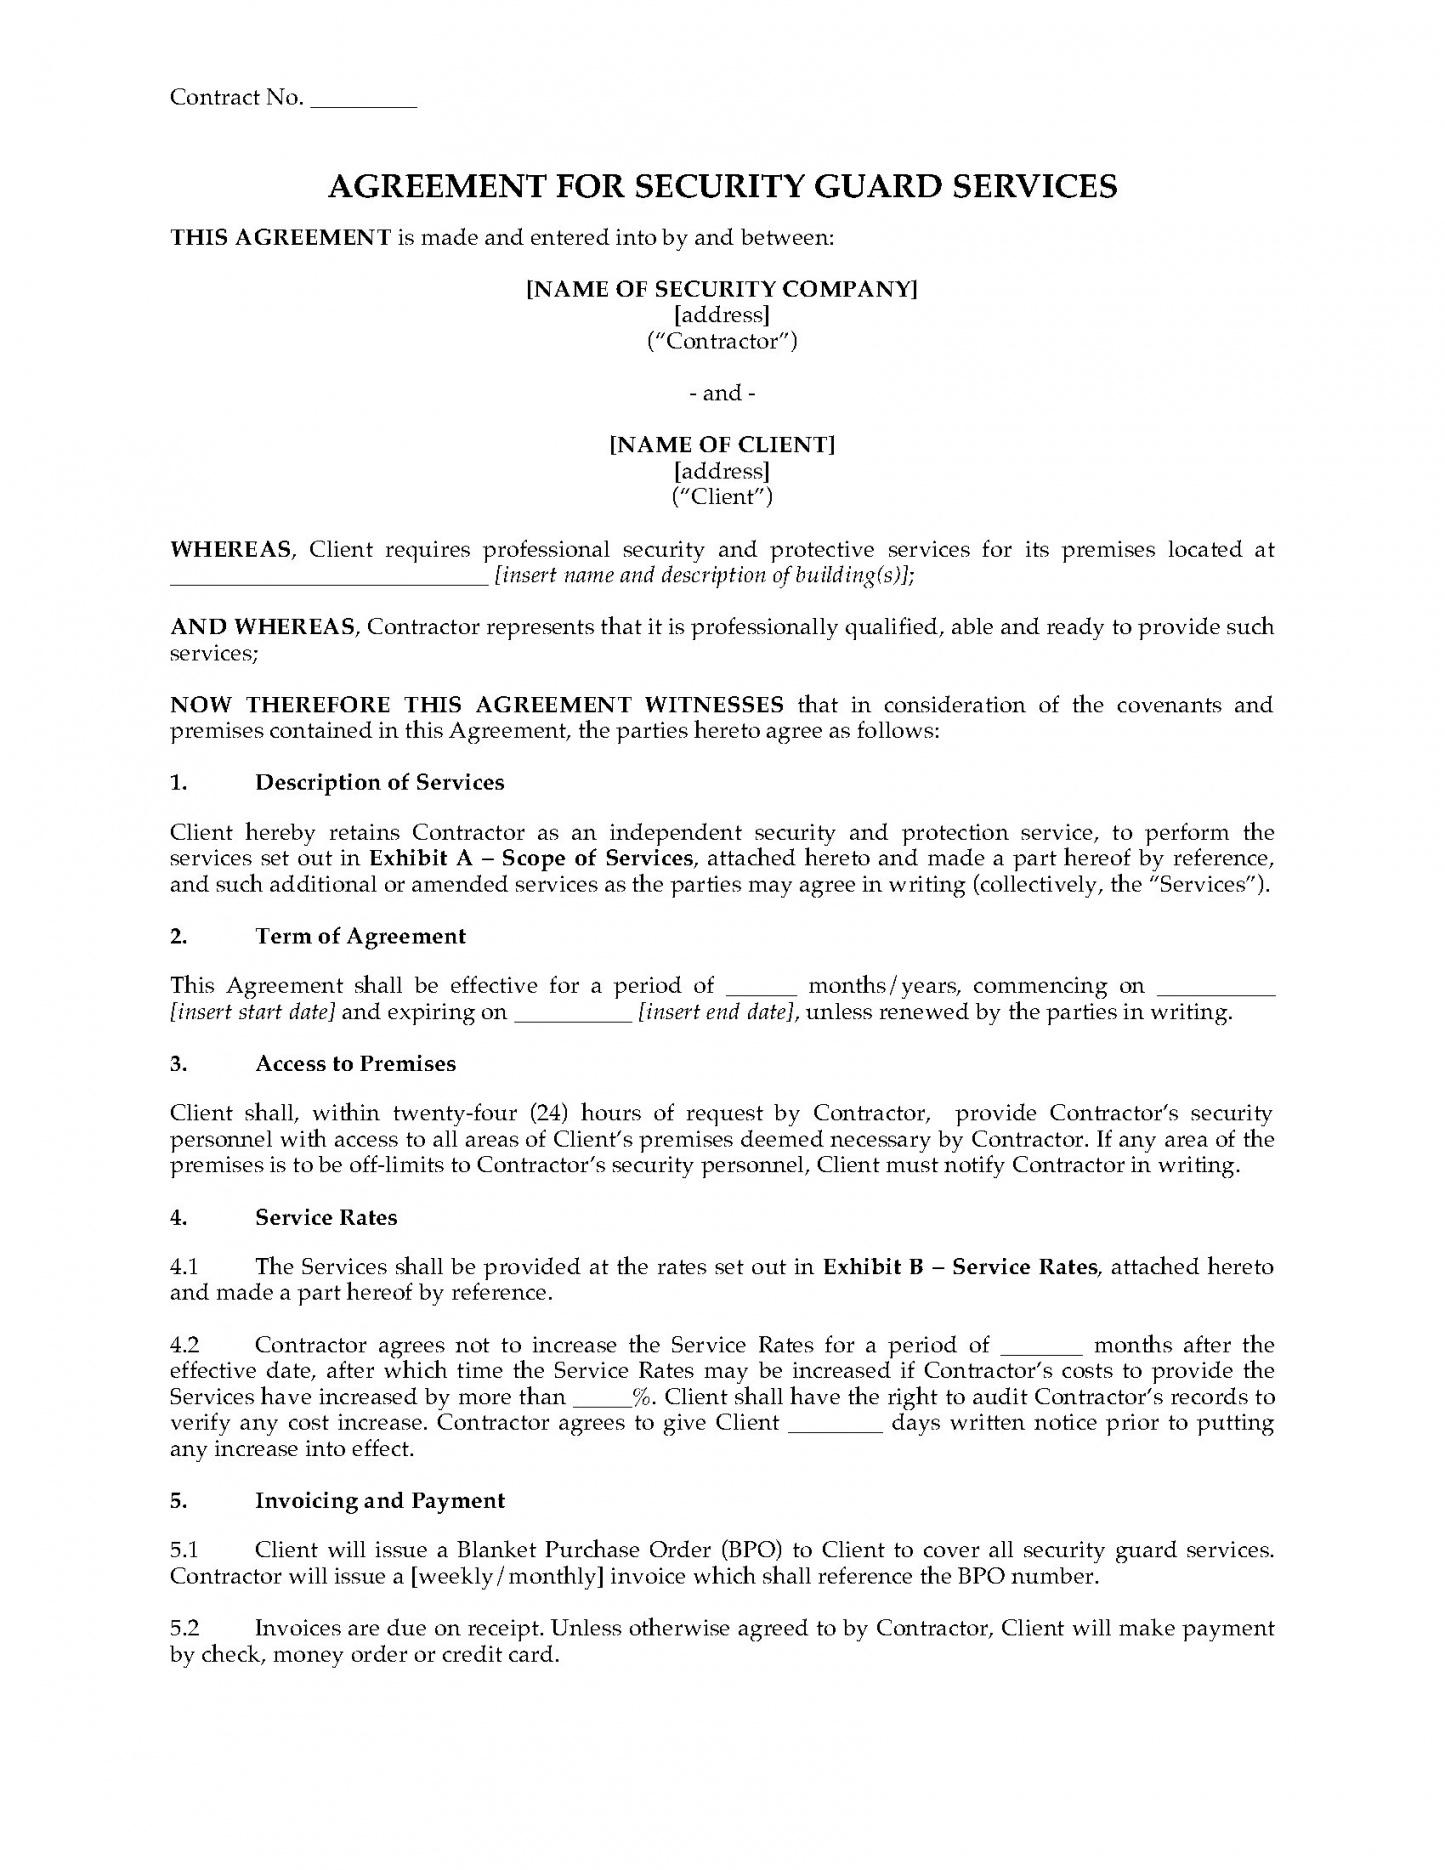 sample usa security guard services agreement security service guard contract template word